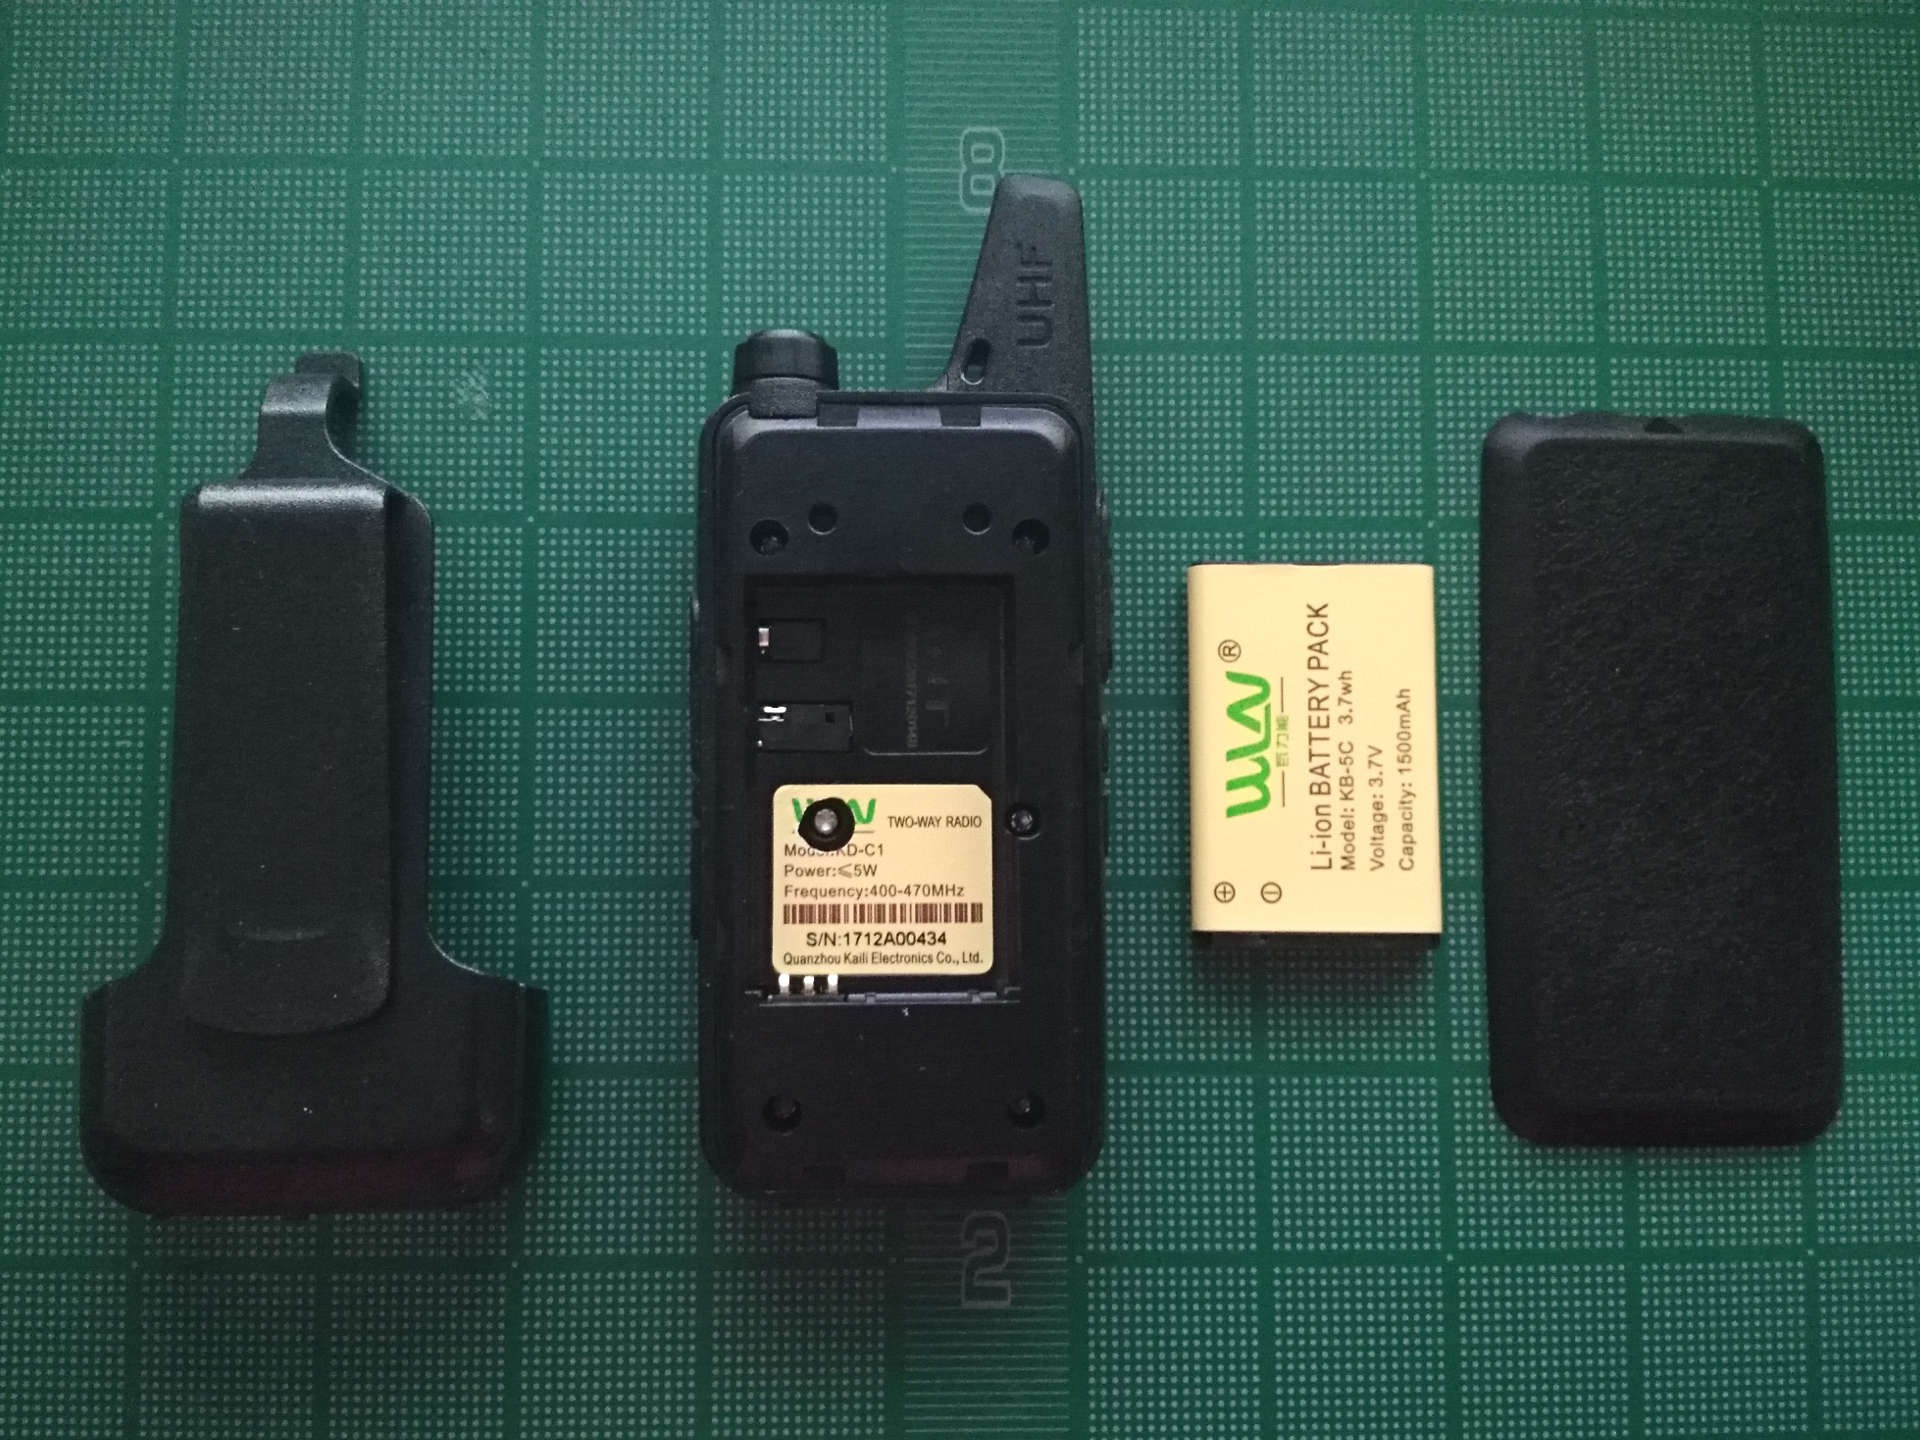 scraps/wln-kdc1-teardown/clip-battery-removed.jpg